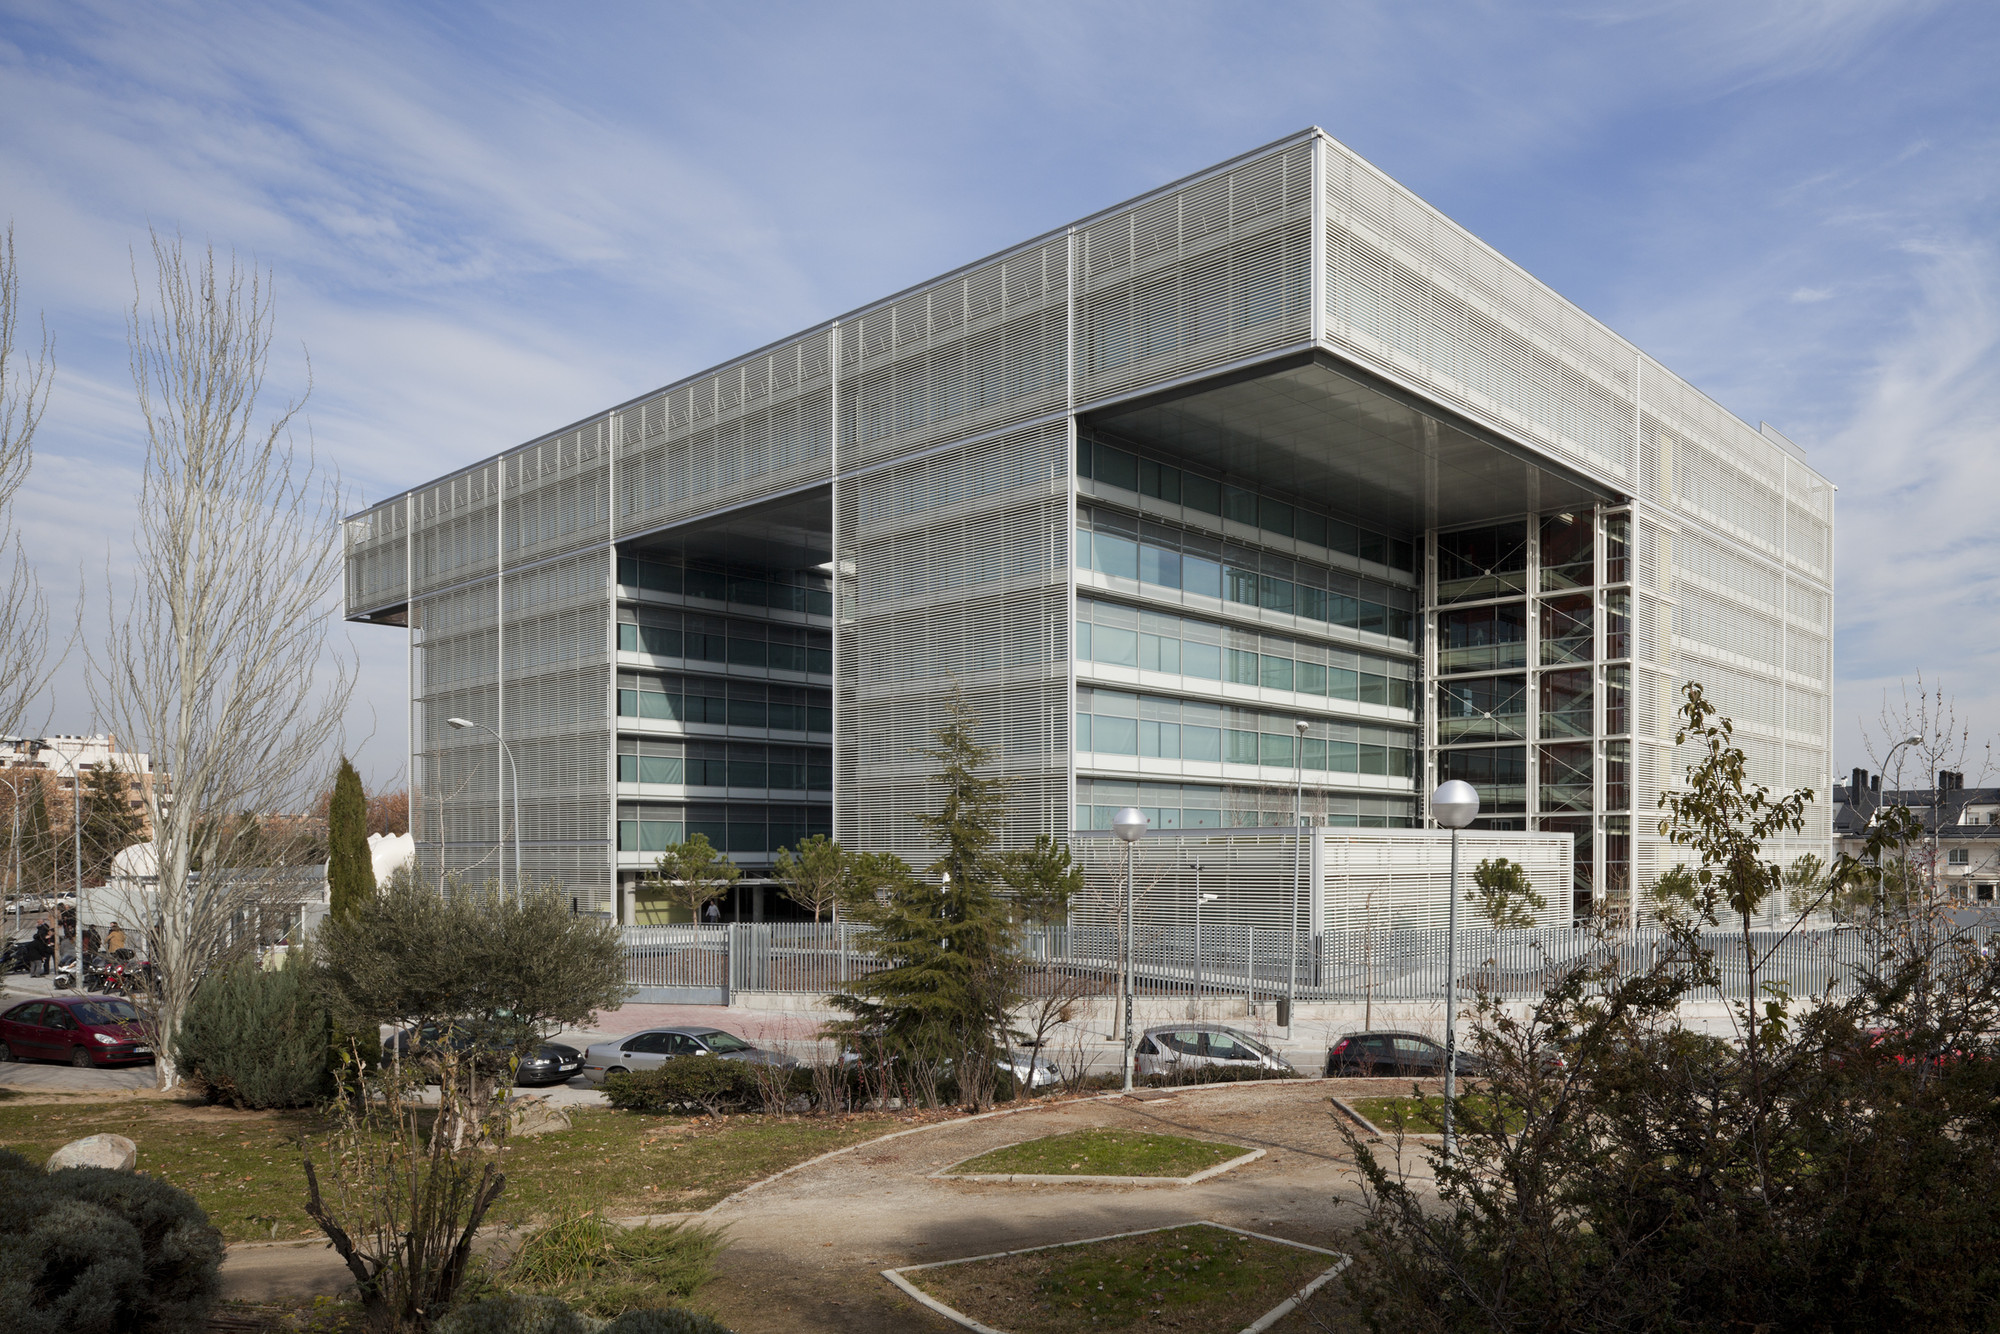 Nueva sede banco popular arquitectos ayala for Oficinas banco popular madrid